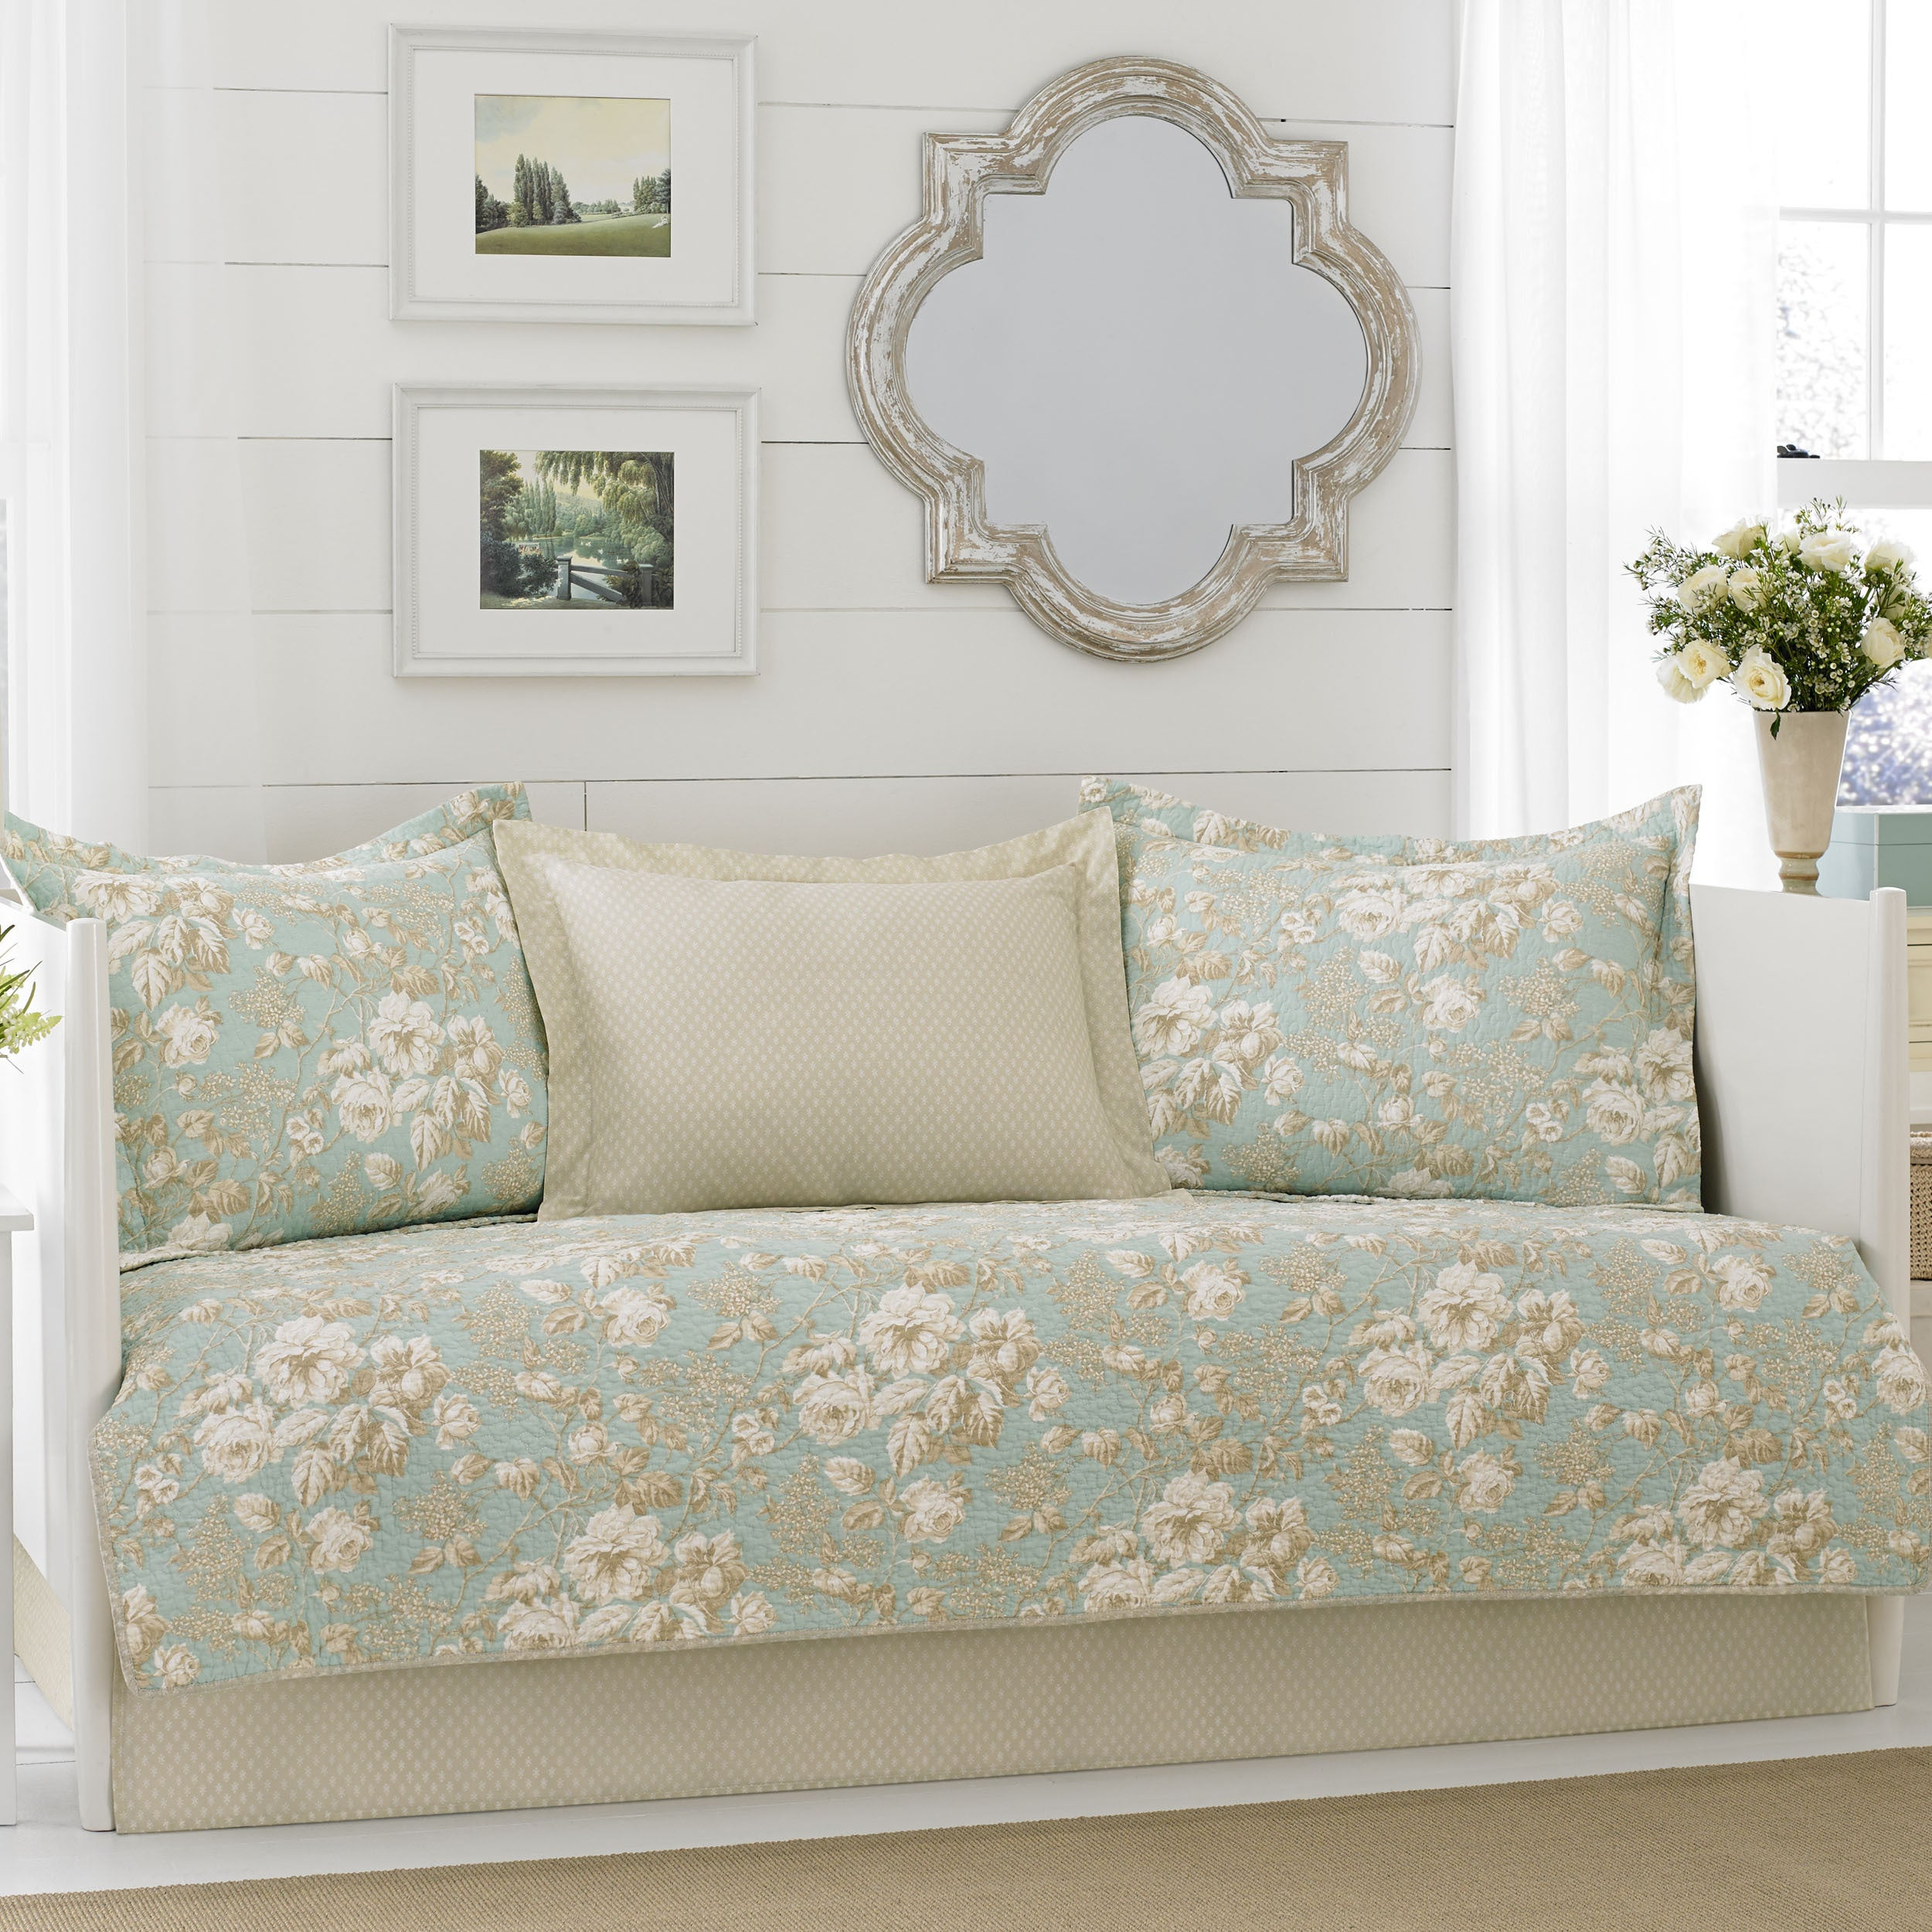 Laura Ashley Brompton Serene 5-piece Daybed Cover Set (Da...